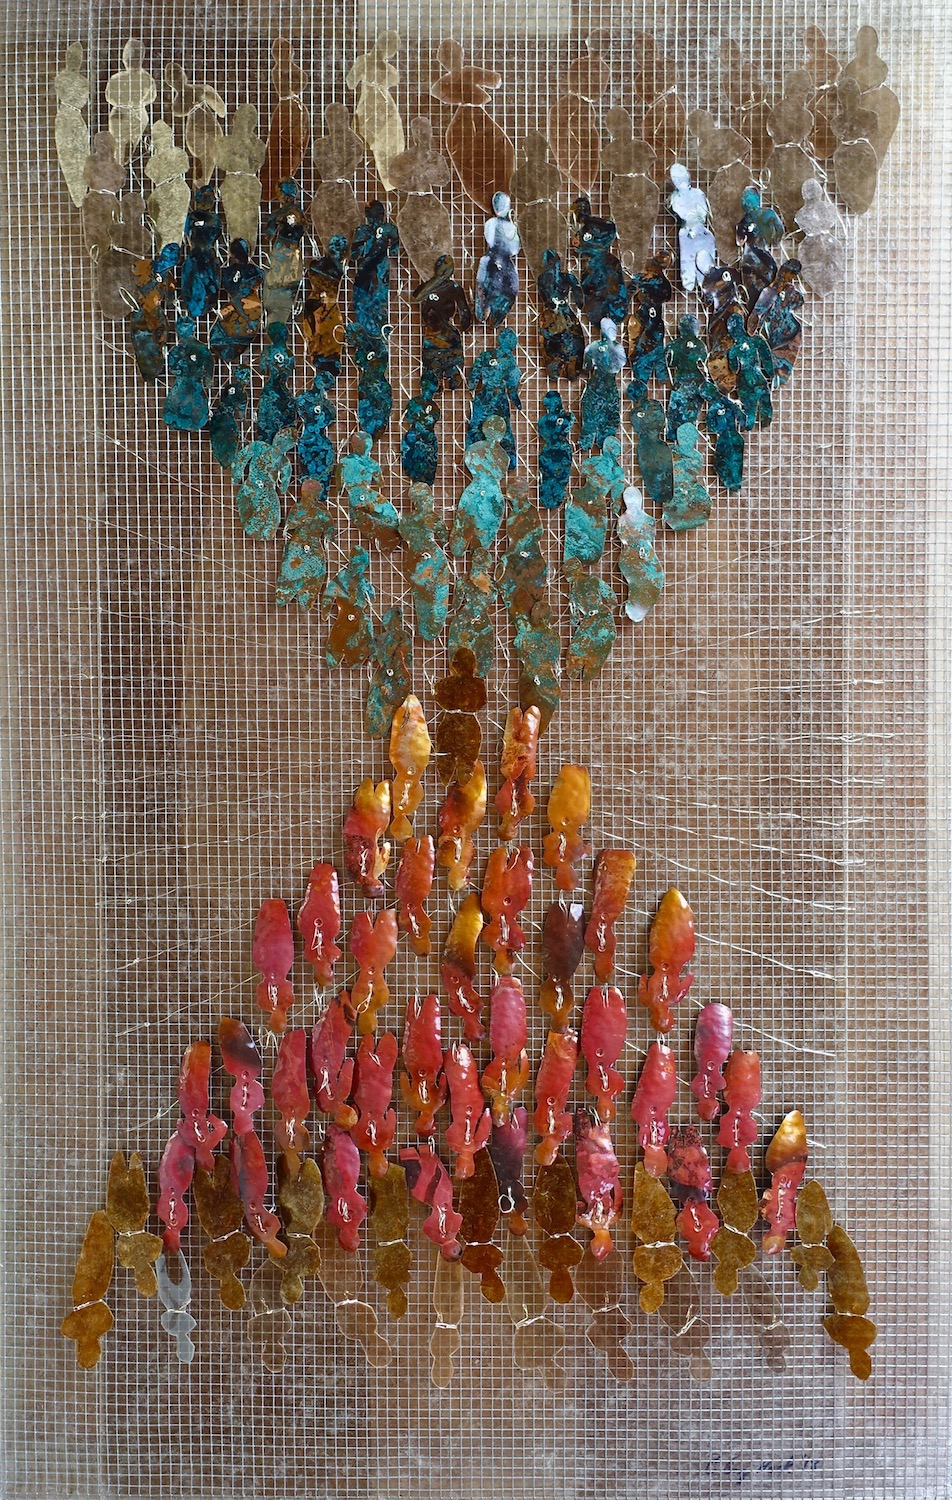 "a History of the Self patinated copper, mica, steel, mixed media 36x22x2"" 2018"